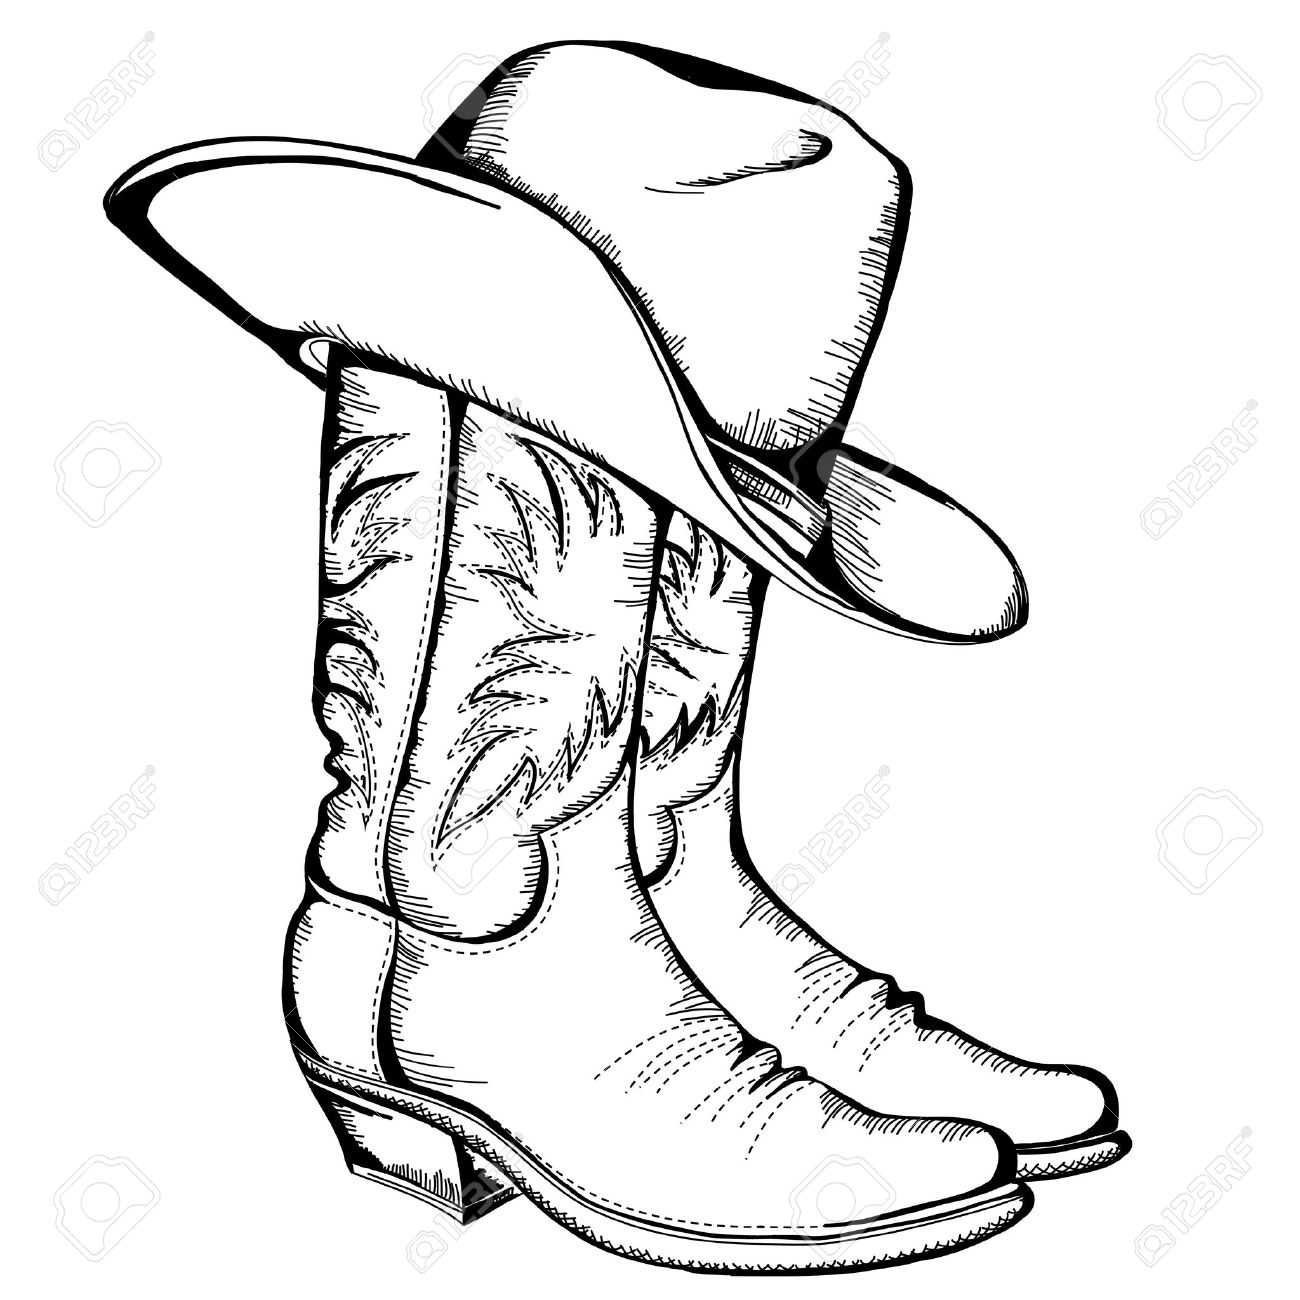 2,601 Cowboy Boots Stock Vector Illustration And Royalty Free ...